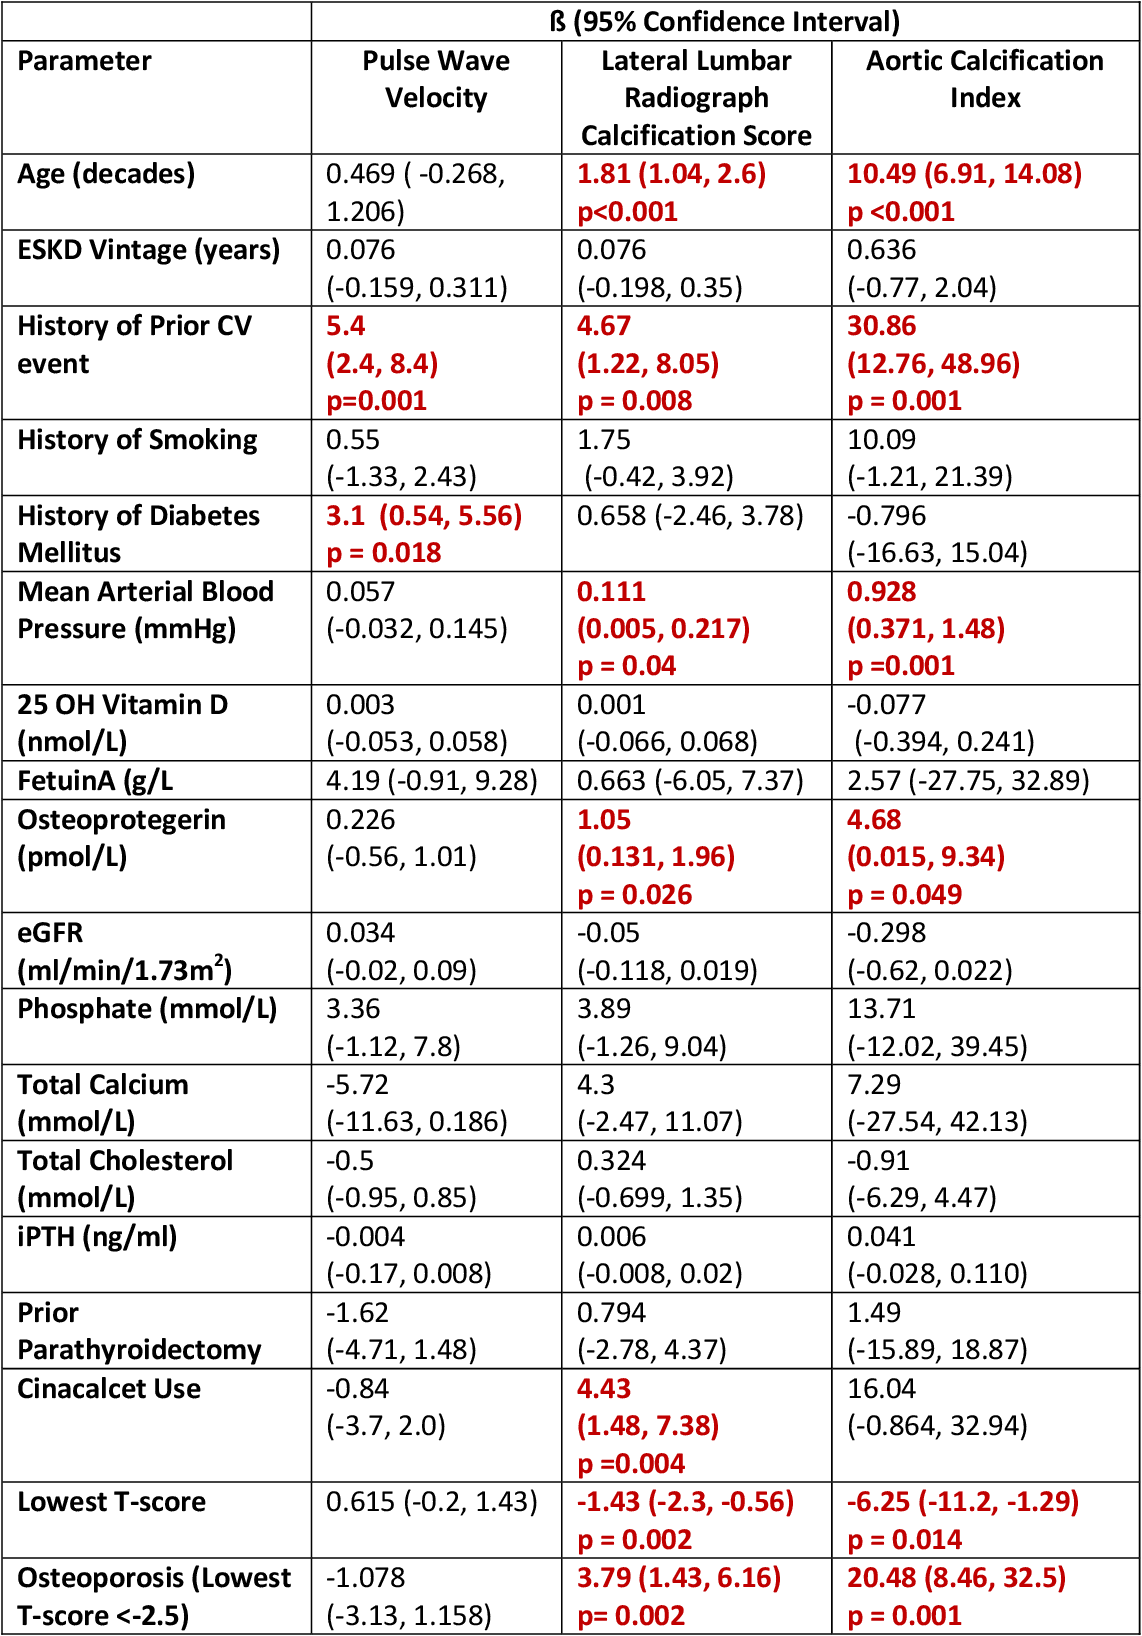 Table 5.2: Linear Regression Univariate Associations of Measures of Vascular Calcification with demographic, clinical and laboratory variables.